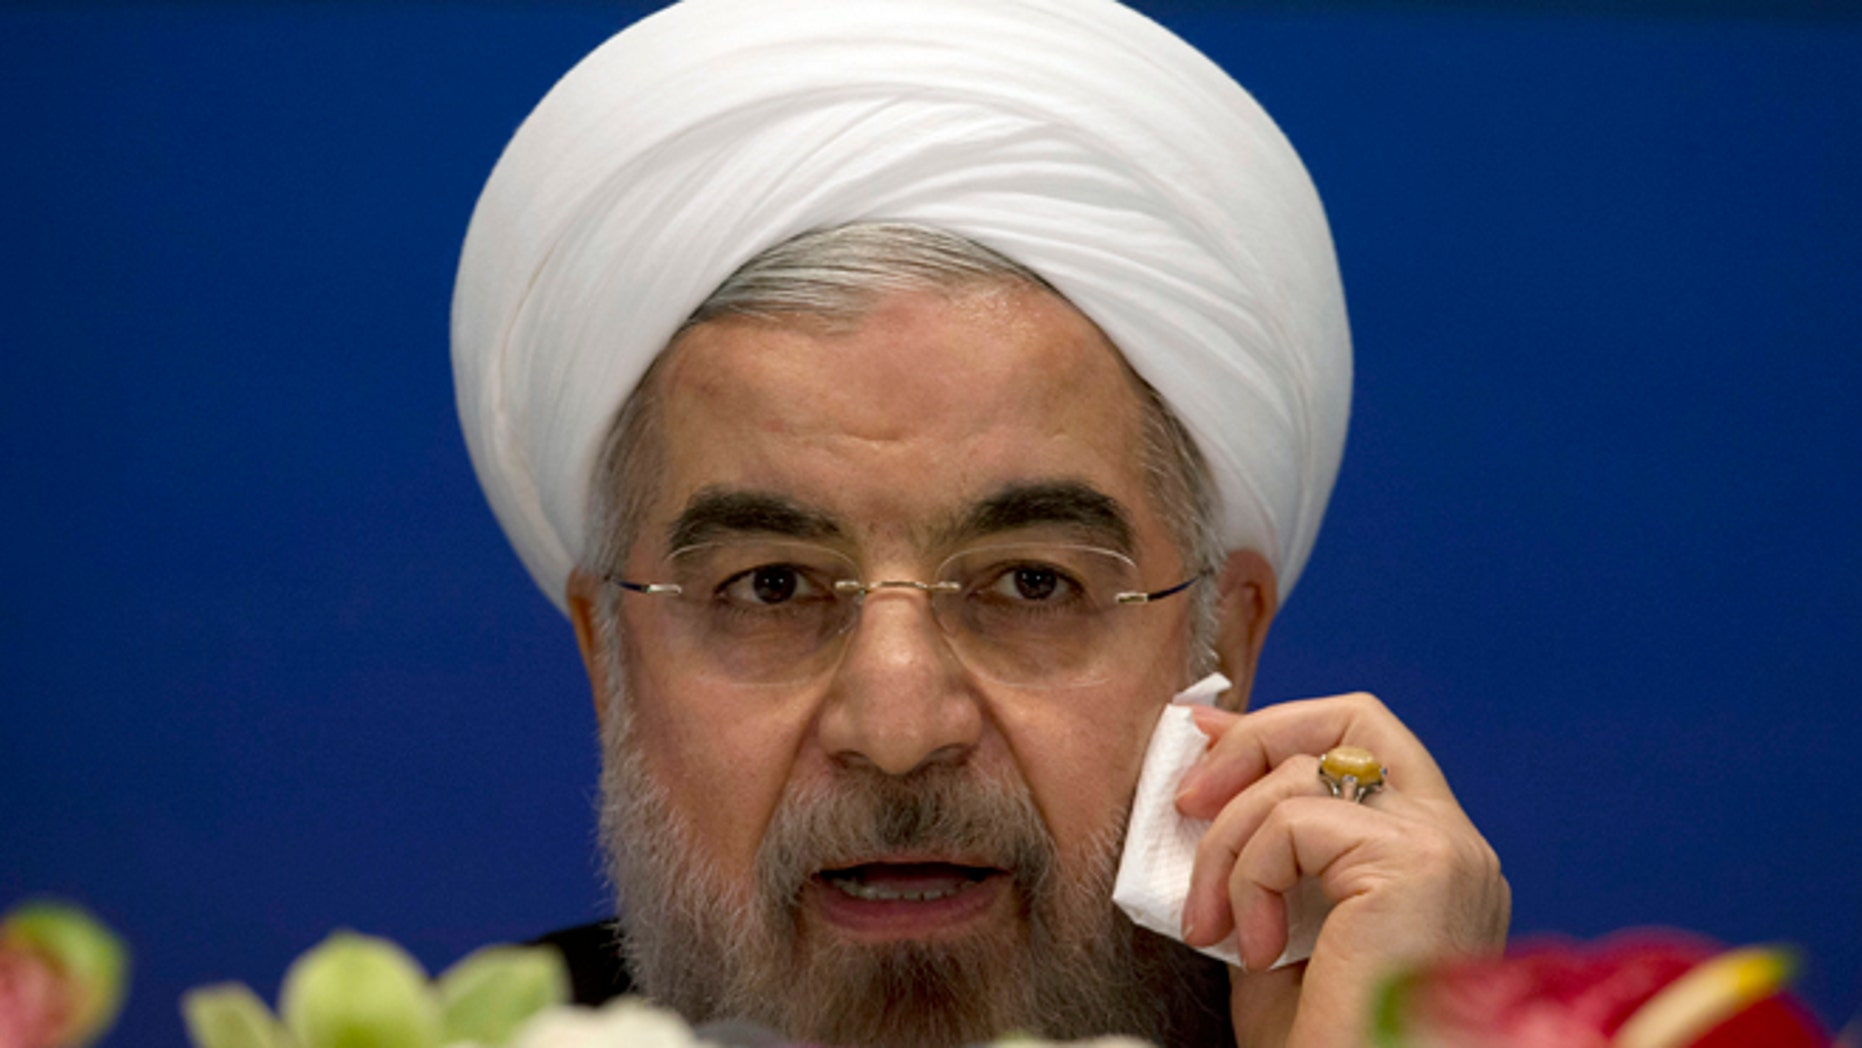 May 22, 2013: Iranian President Hassan Rouhani wipes his cheek as he speaks during a press conference at a hotel in Shanghai, China.